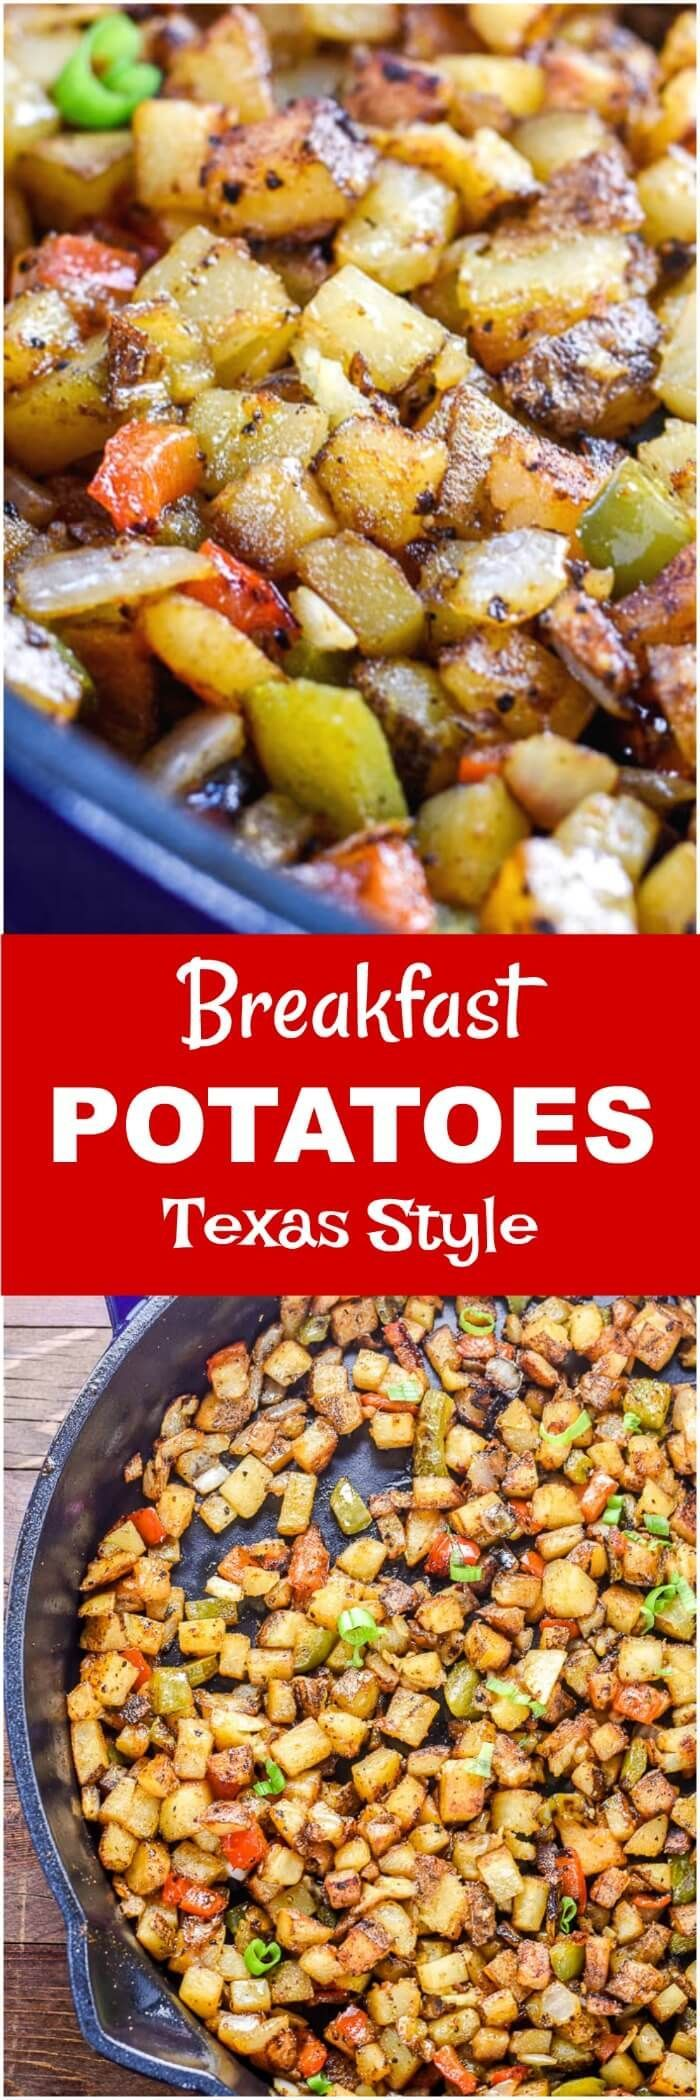 TheseBreakfast Potatoesare bites of roasted potatoes spiced up Texas style with taco seasoning, chopped onions, red bell peppers, and jalapenos, and will kick-startyour breakfast or brunch.